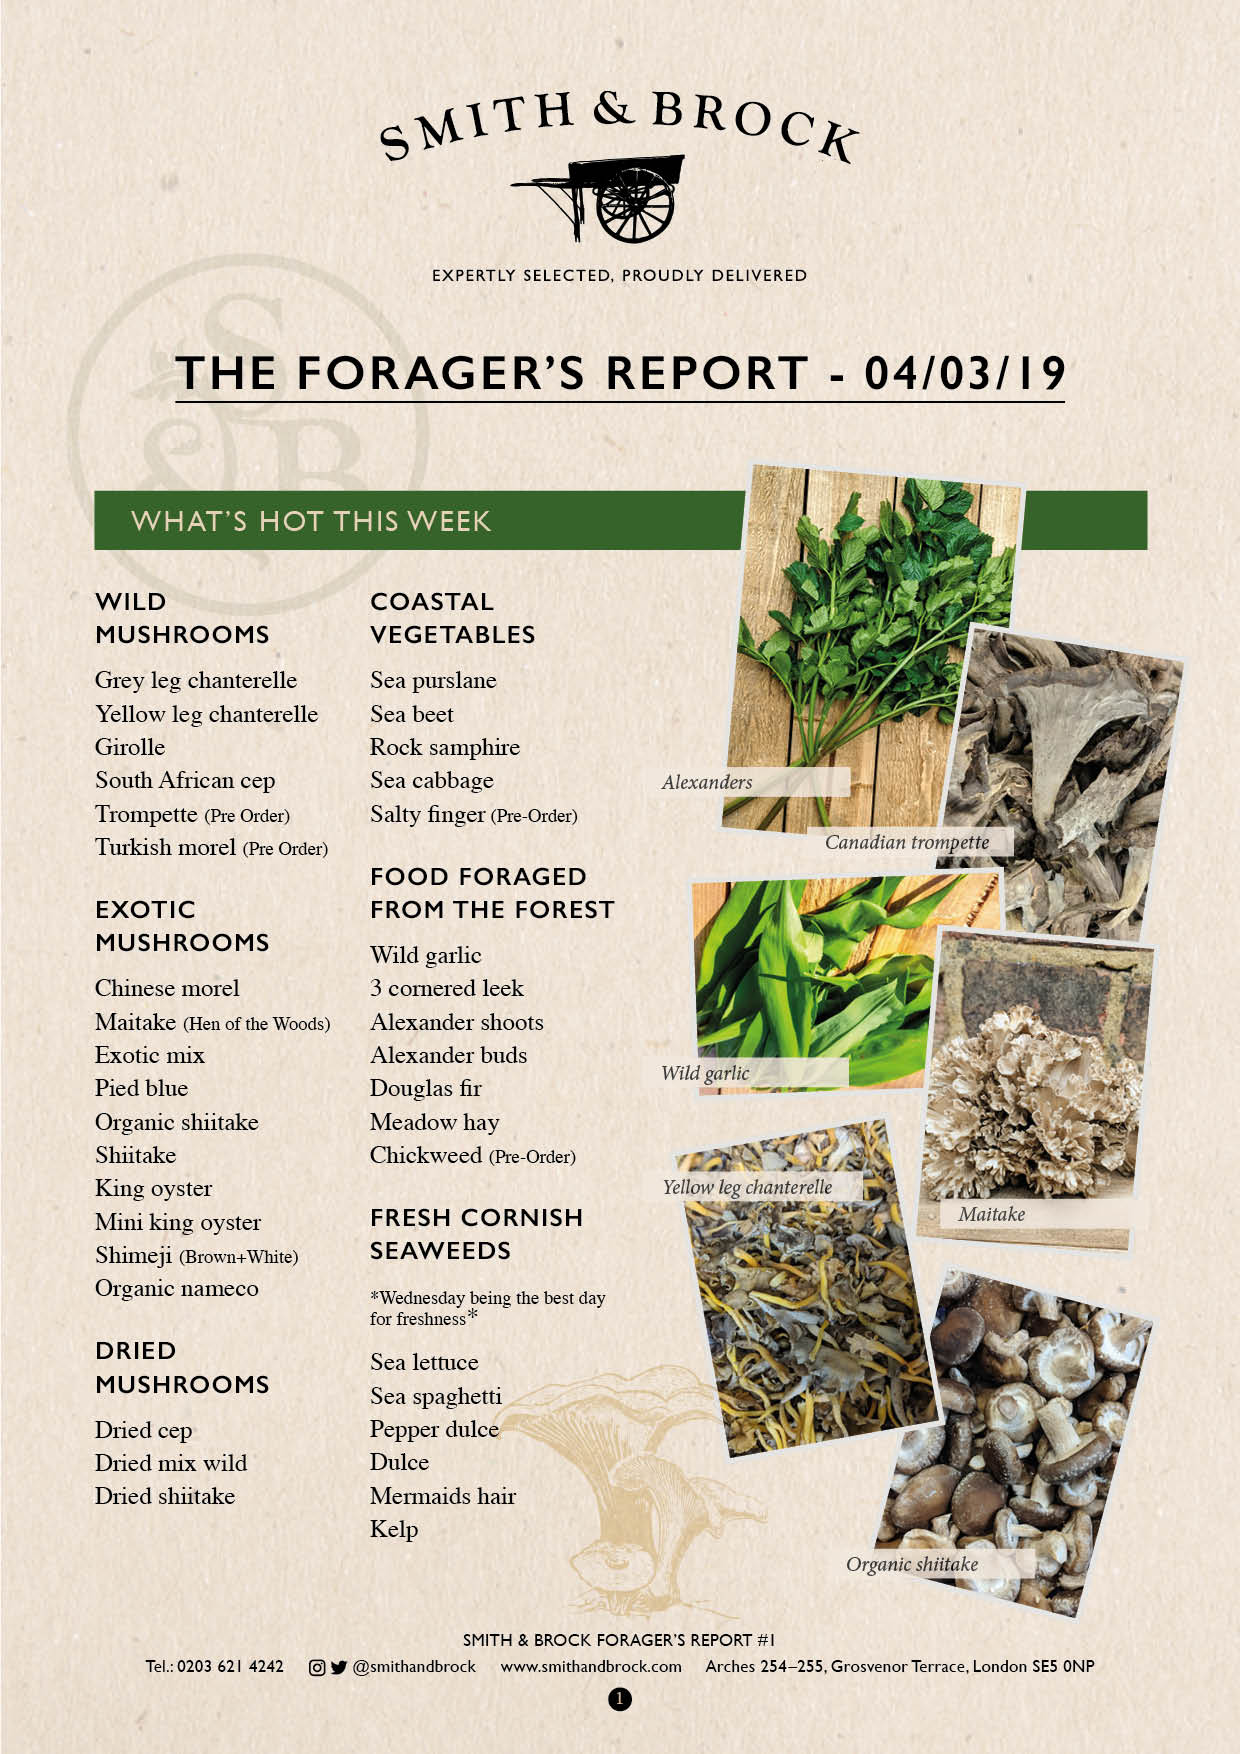 Smith&Brock Foraged Products Report 04 Mar 2019 1